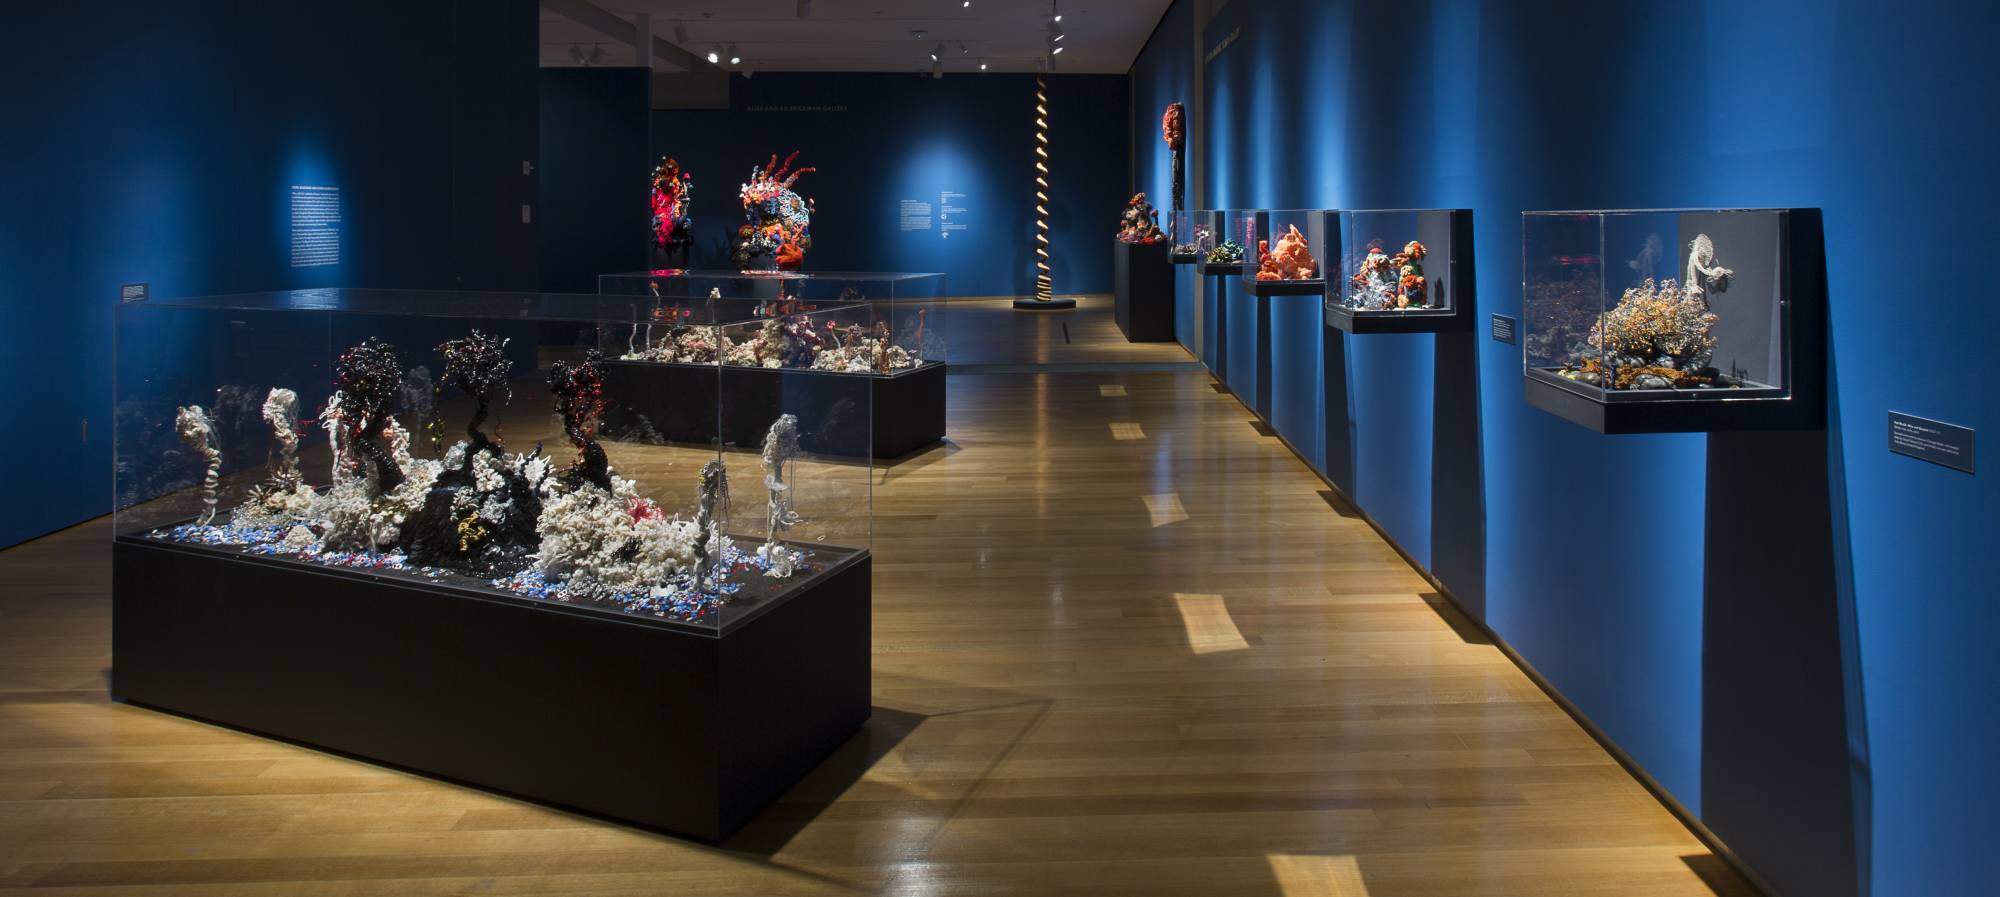 Coral reefs exhibited in glass vitrines in a room with blue walls.